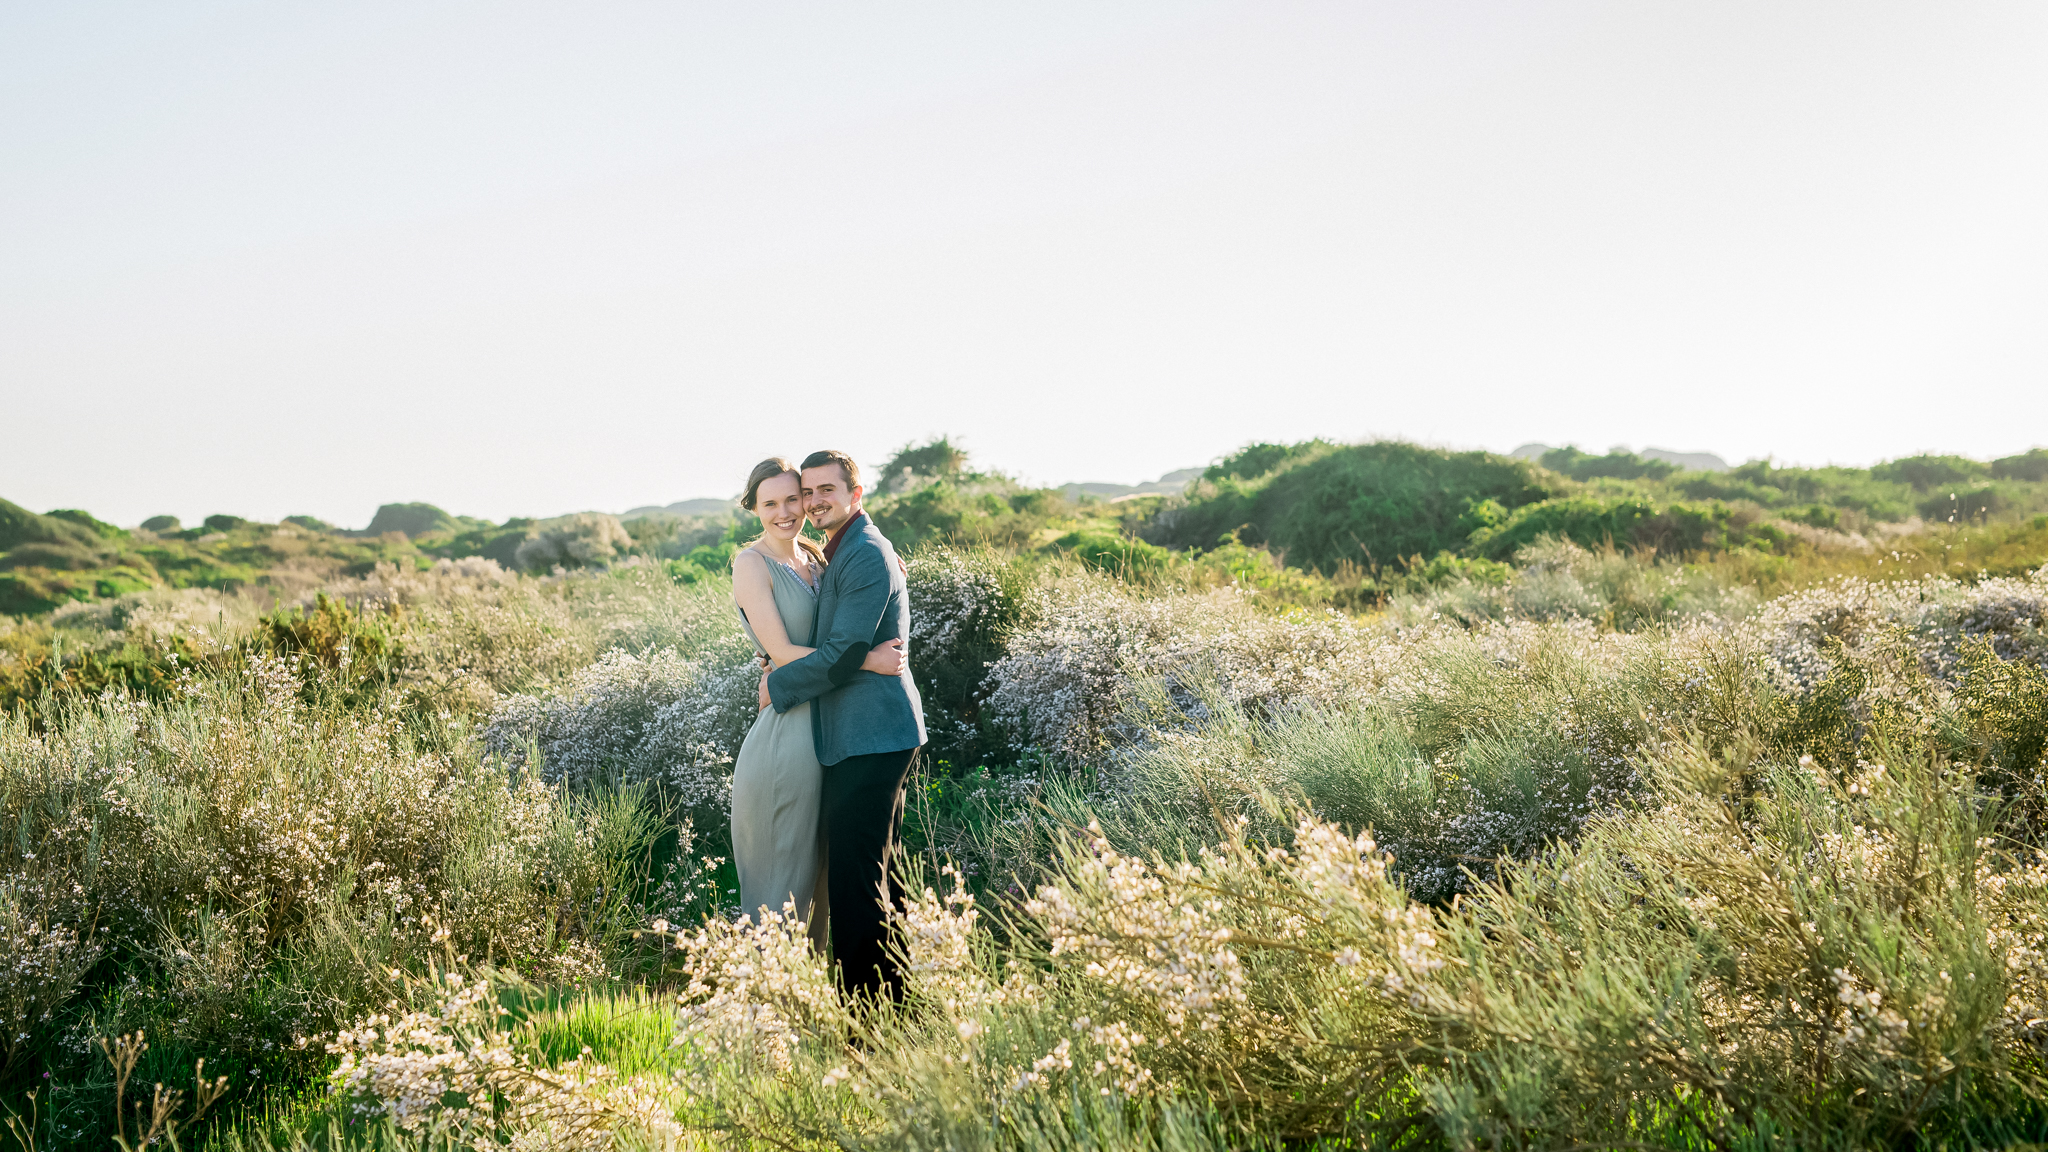 Cliffside-beach-engagement-session-hadera-israel-kate-giryes-photography-9079.jpg